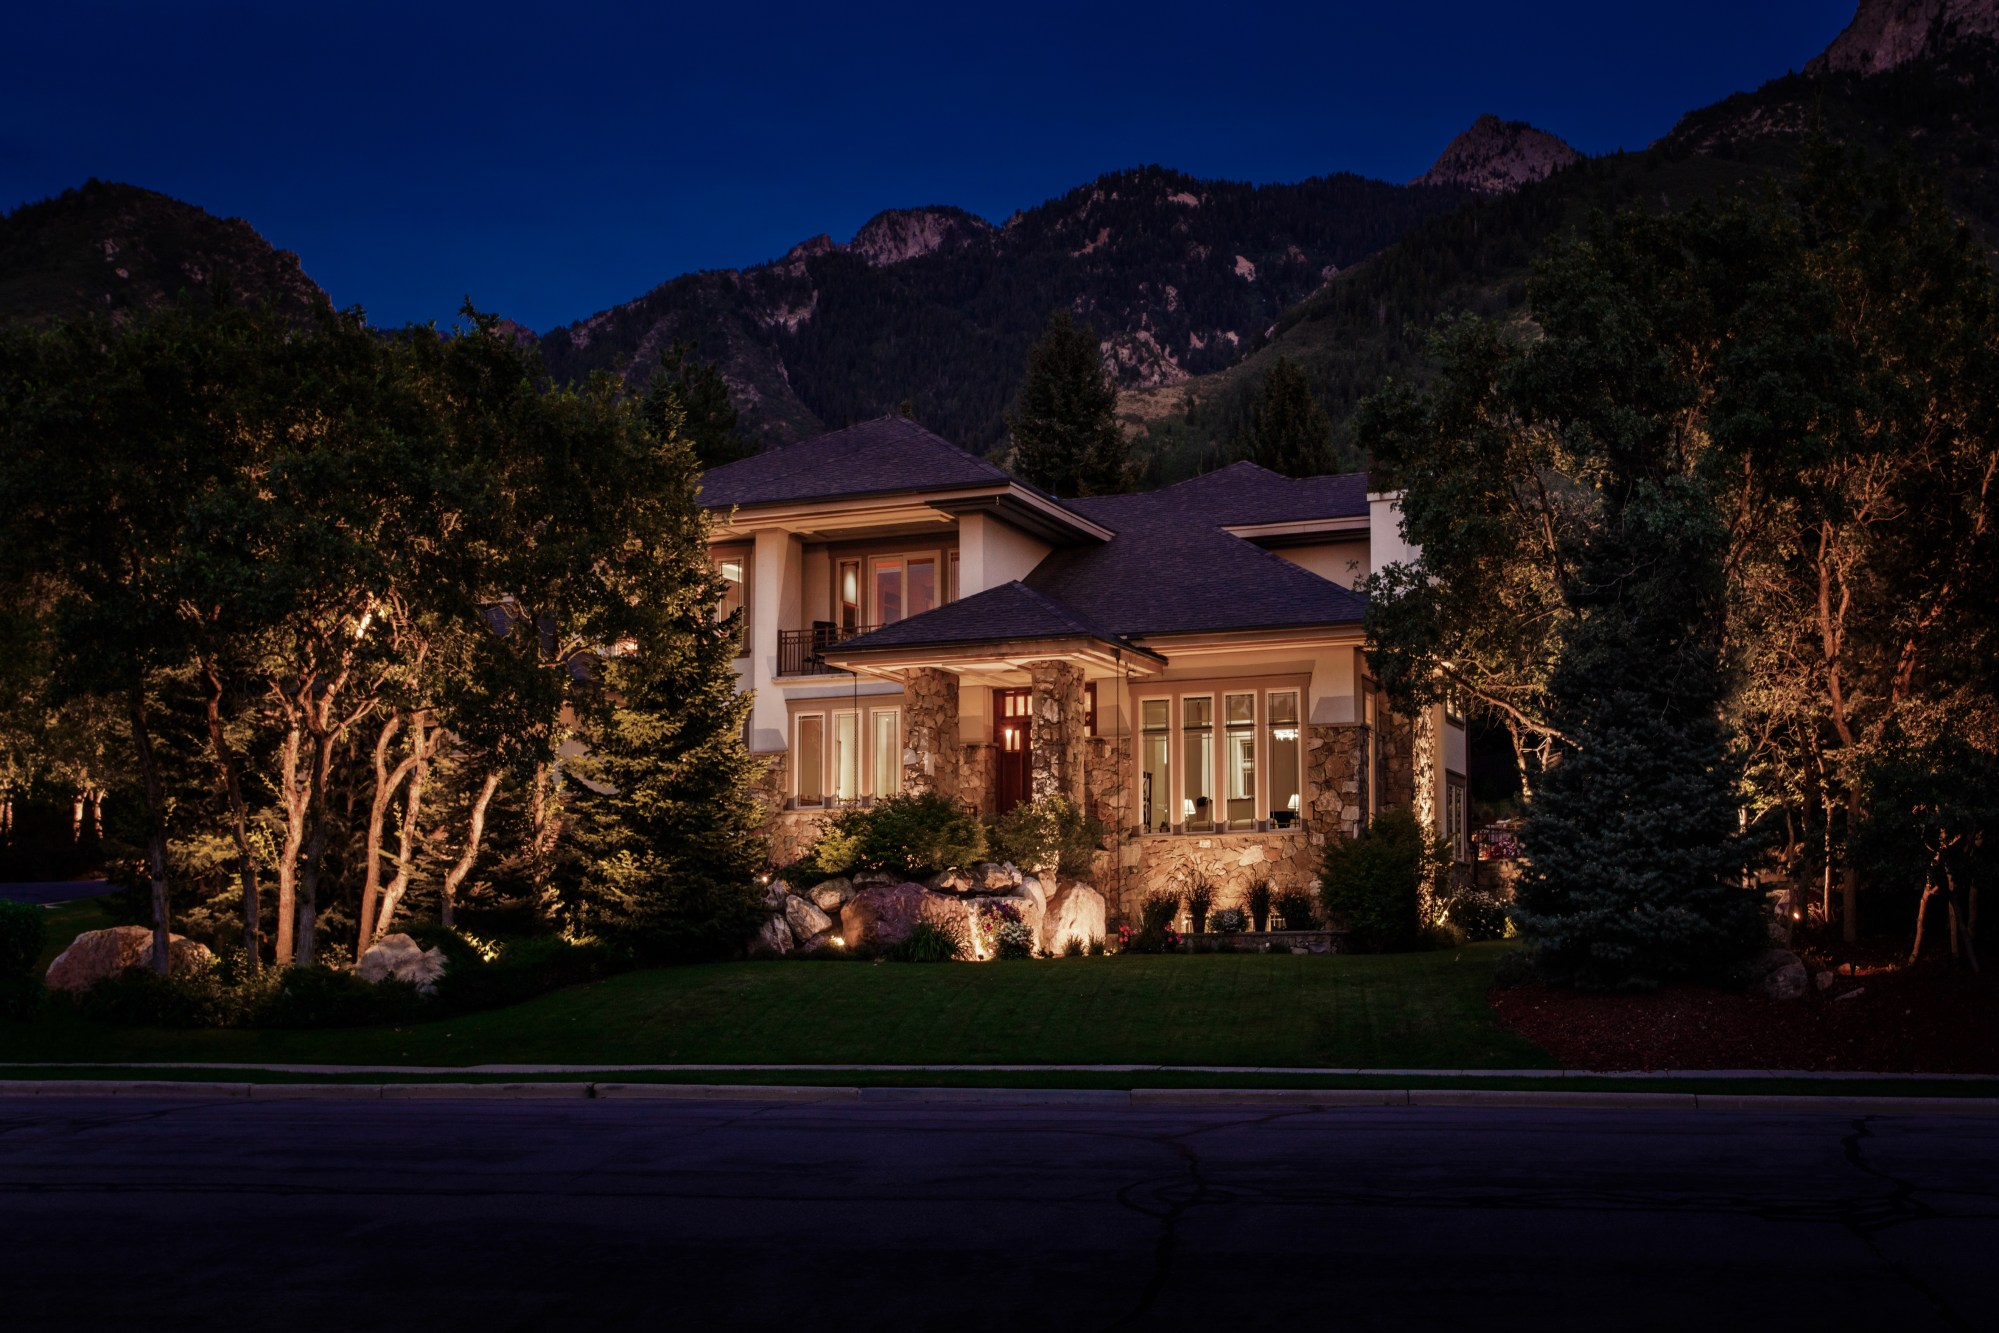 hight resolution of slc olympus cove security lighting